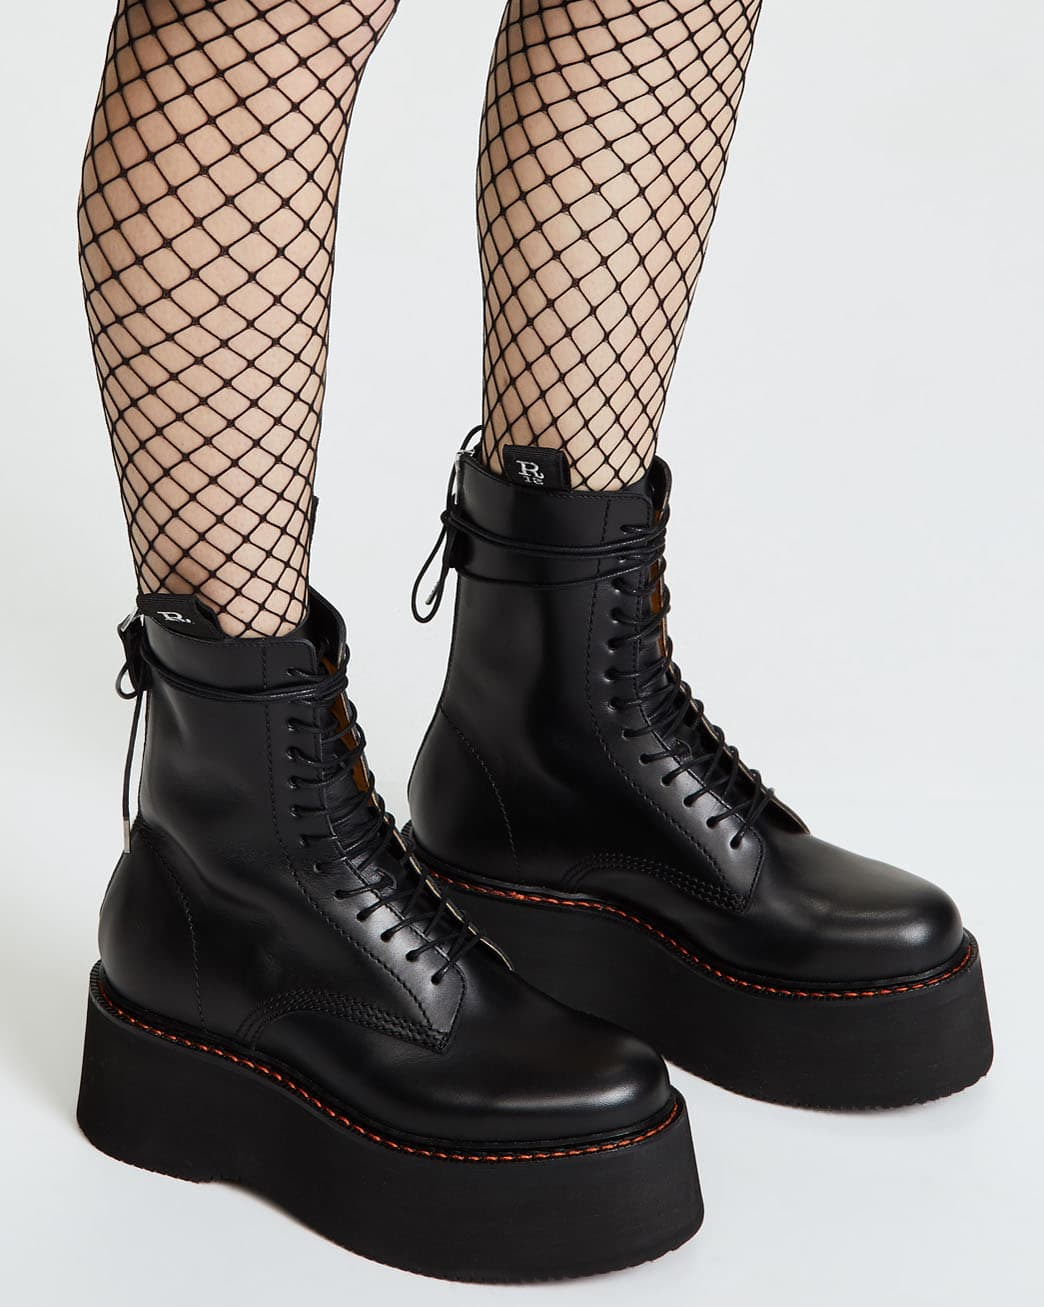 Elevate your rock-chick rebellious look with the R13 combat boots with 2.75-inch platforms